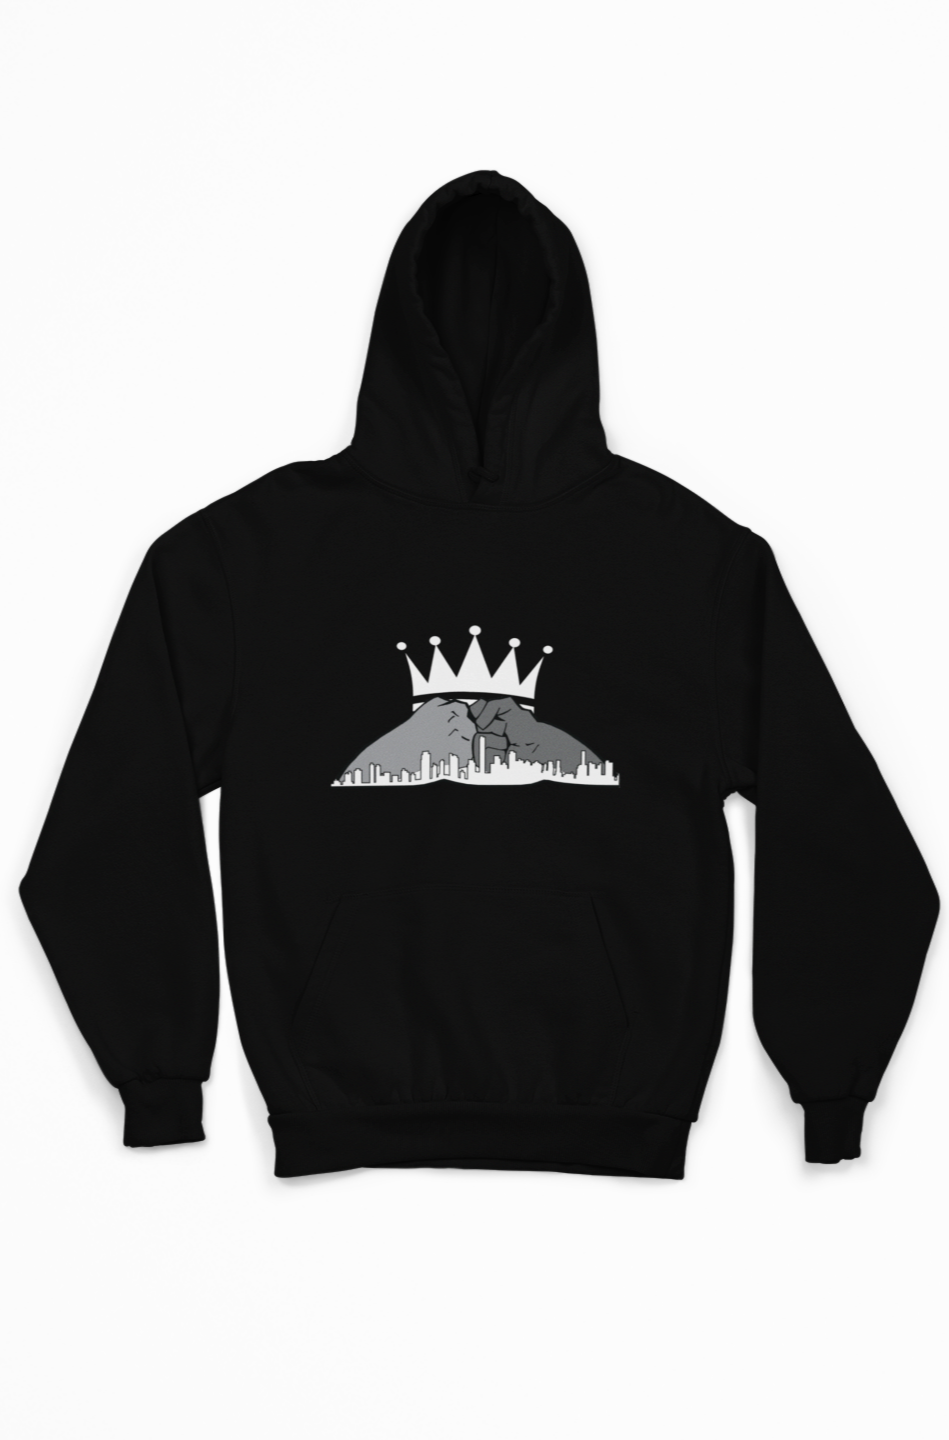 Let's Build Together Hoodie- White Crown